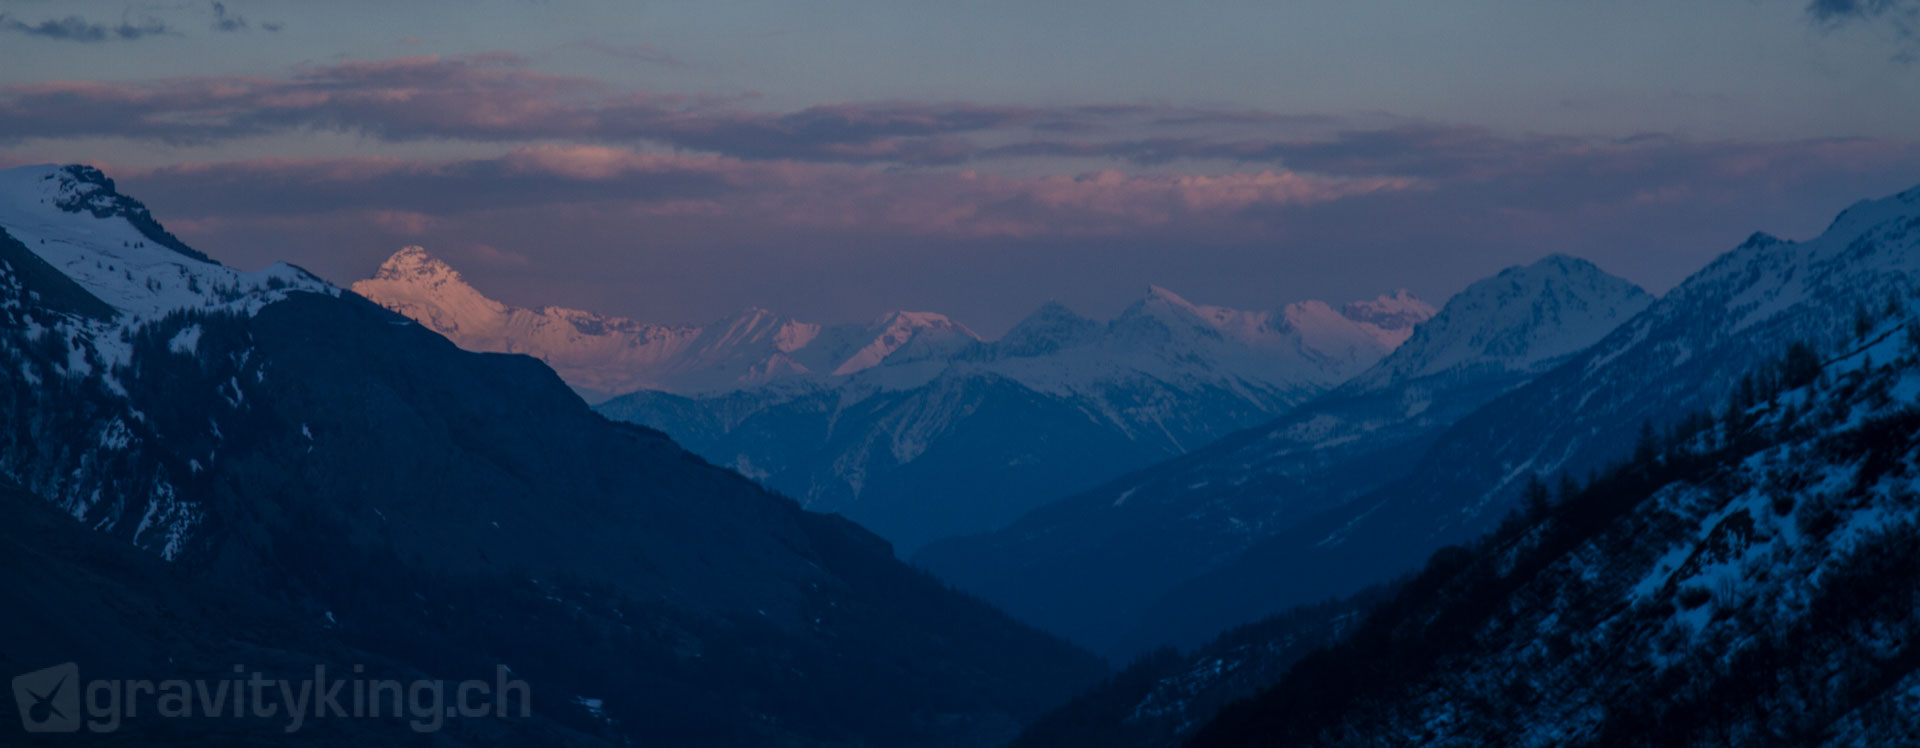 Serre Chevalier alpenglow, French Alps